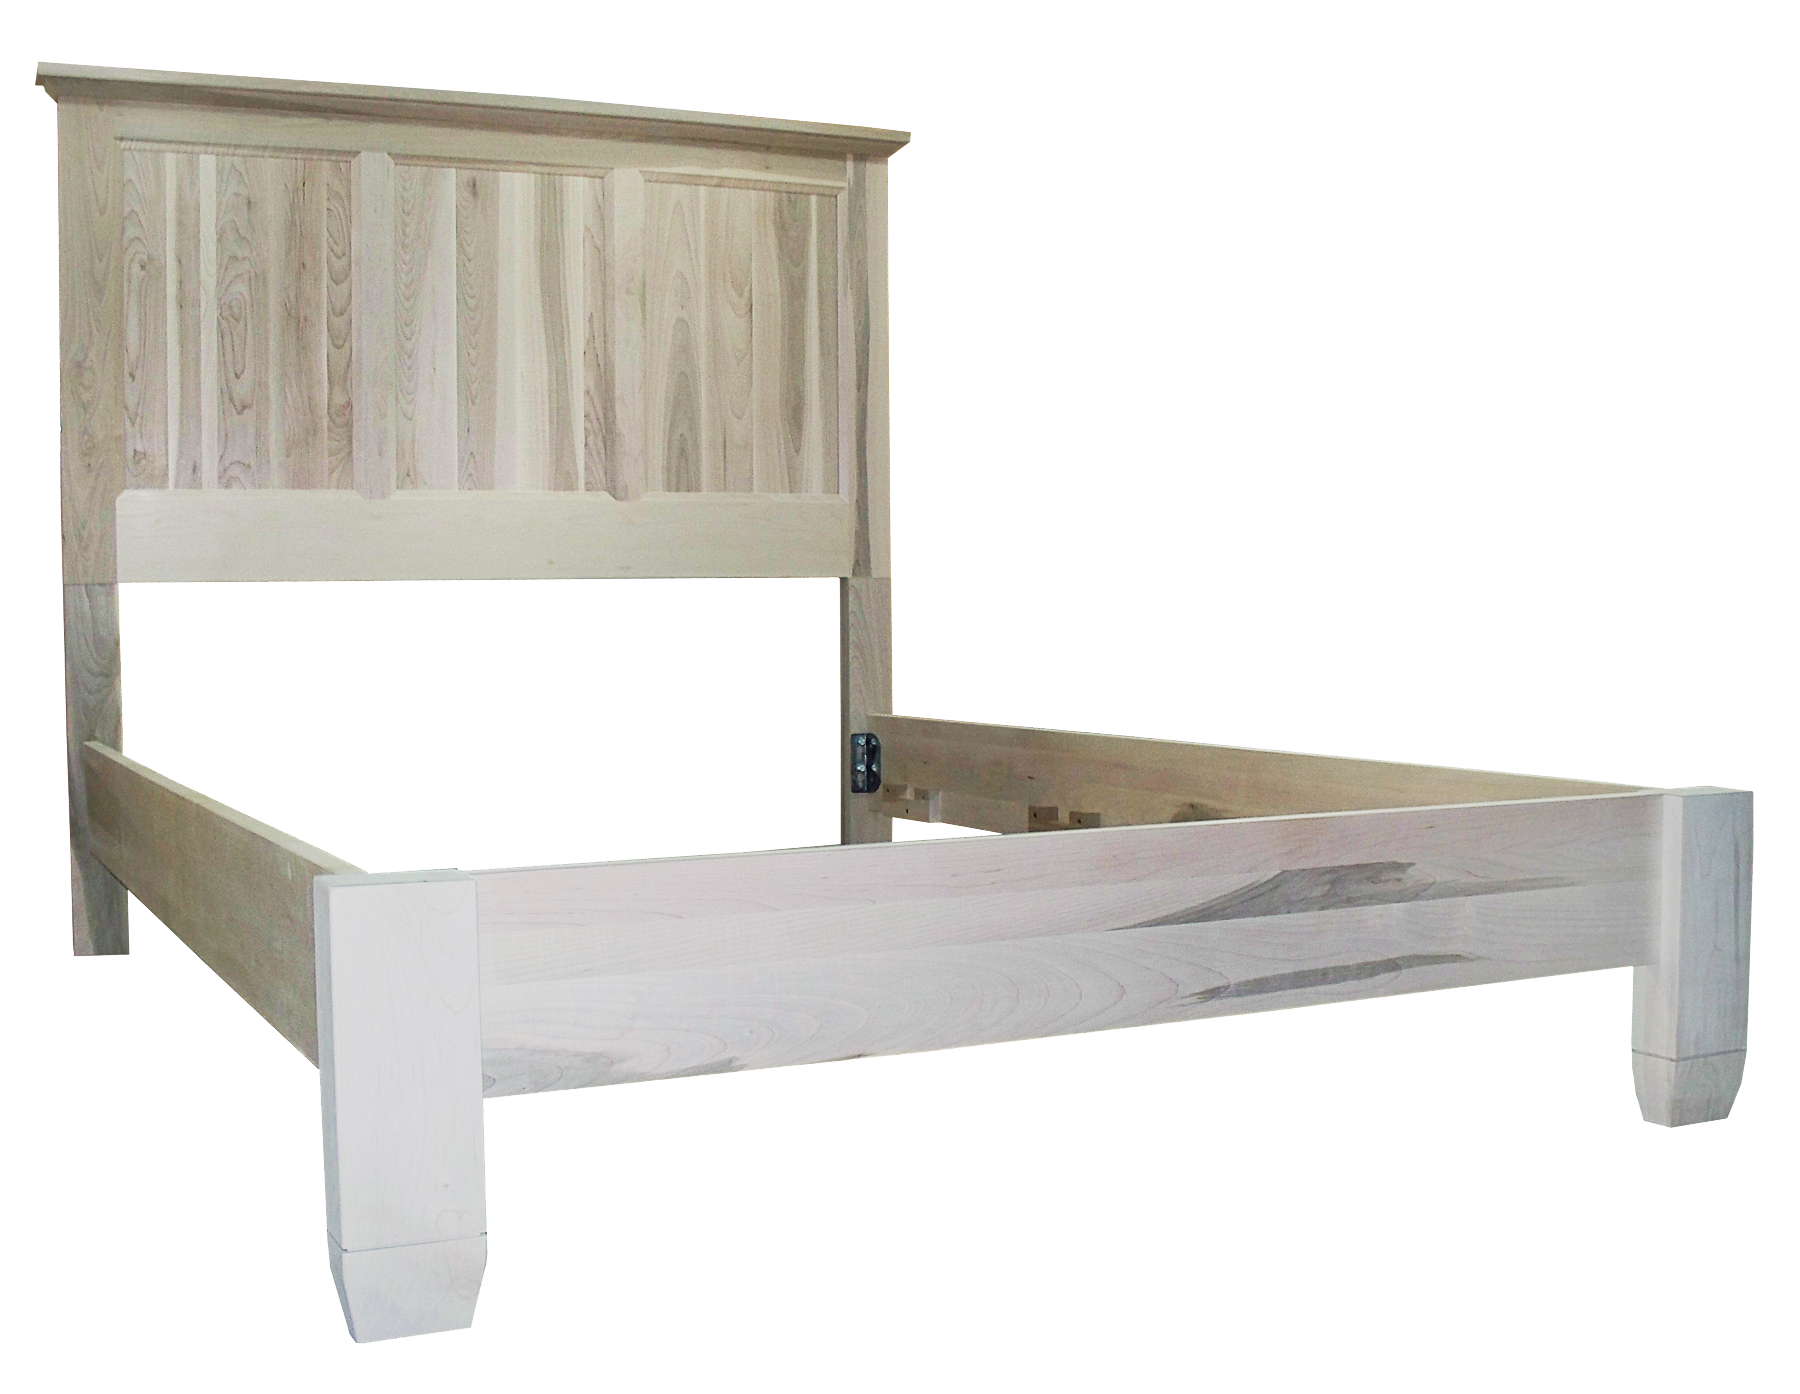 Algonquin bed with wrap around footboard in unfinished brown Maple